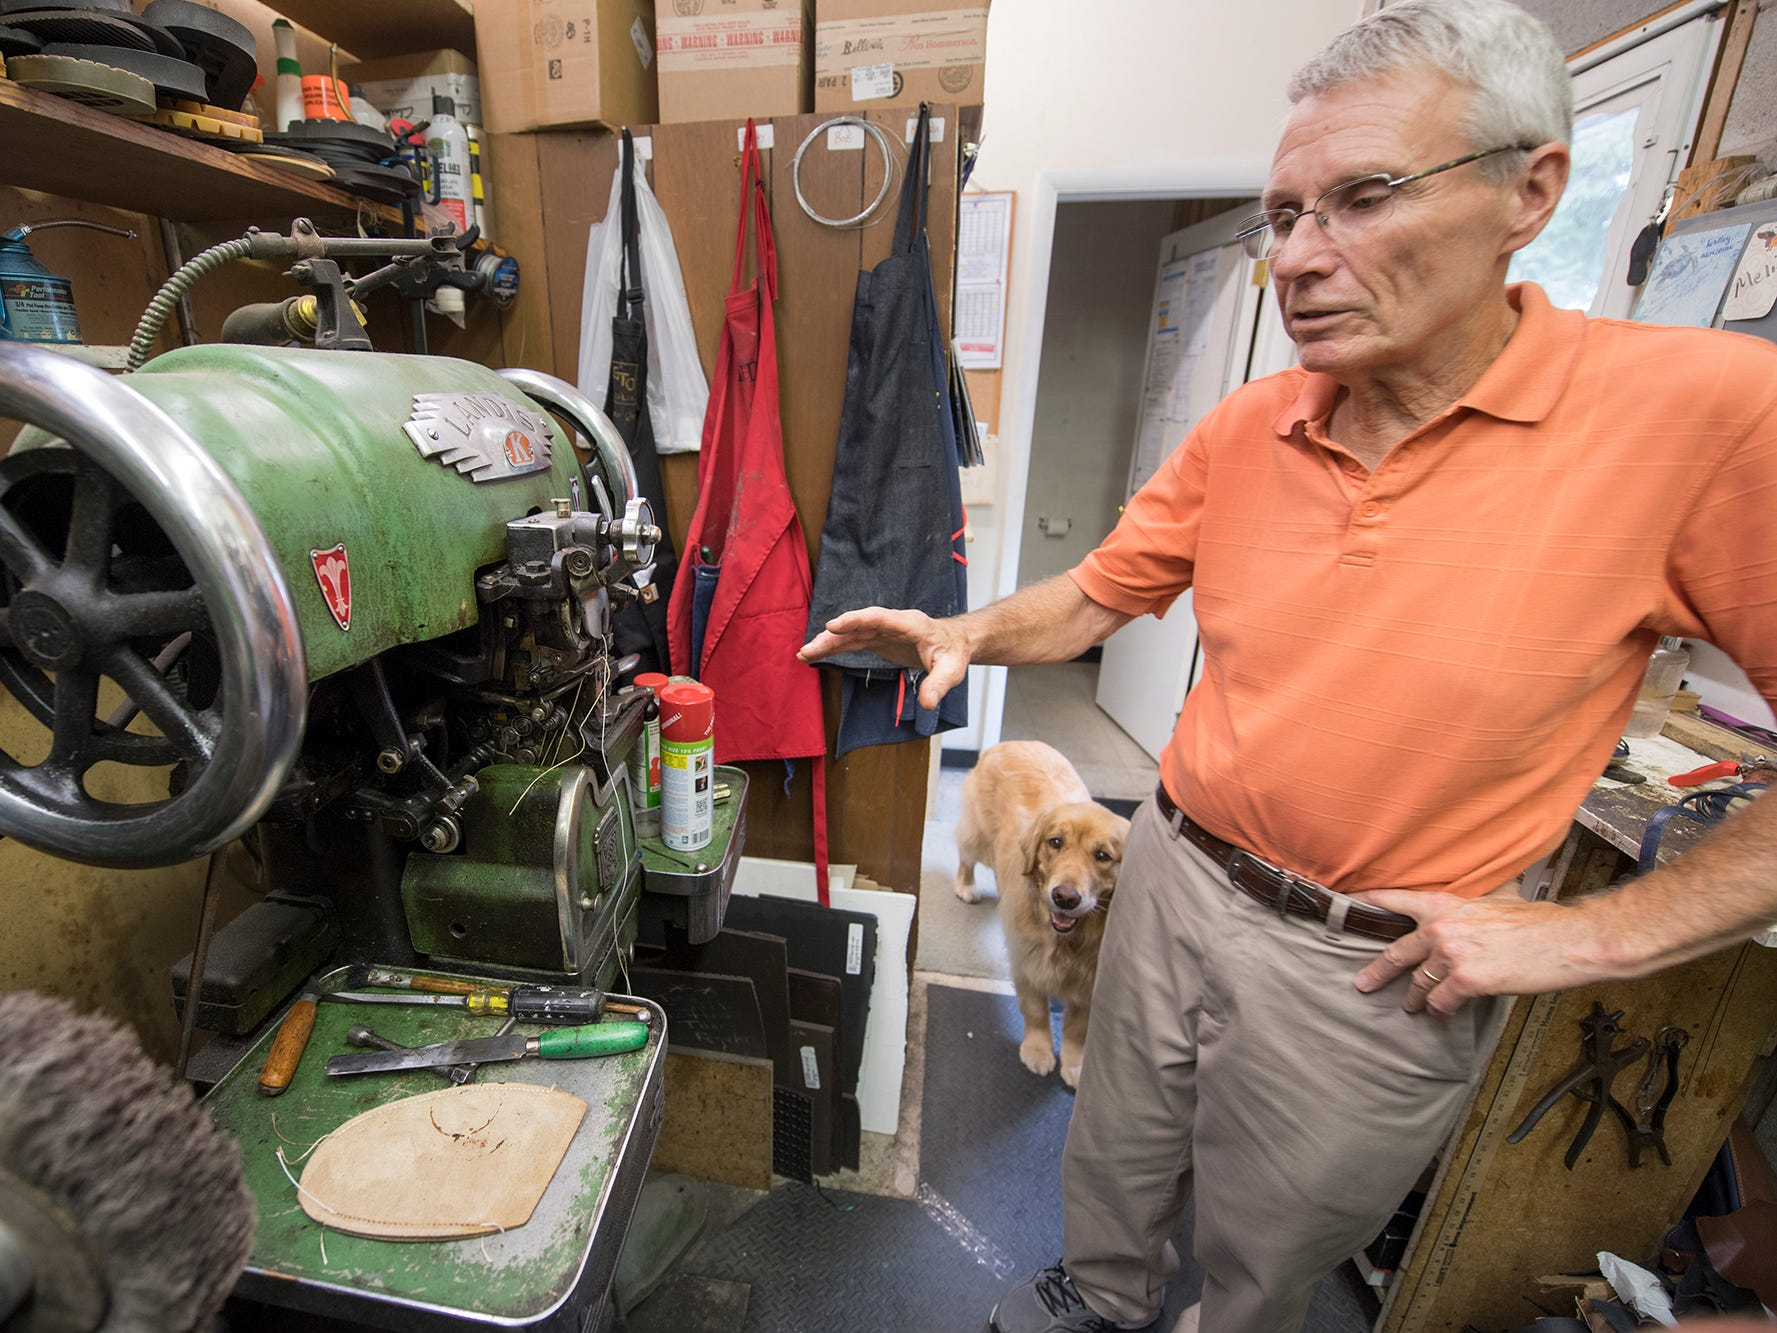 Great-grandson Bob Reineberg stands with a stitcher that sews a sole from the outside, at Reineberg's Shoes & Shoe Repair in Springettsbury Township. The business is closing soon, after 141 years since beginning in downtown York.